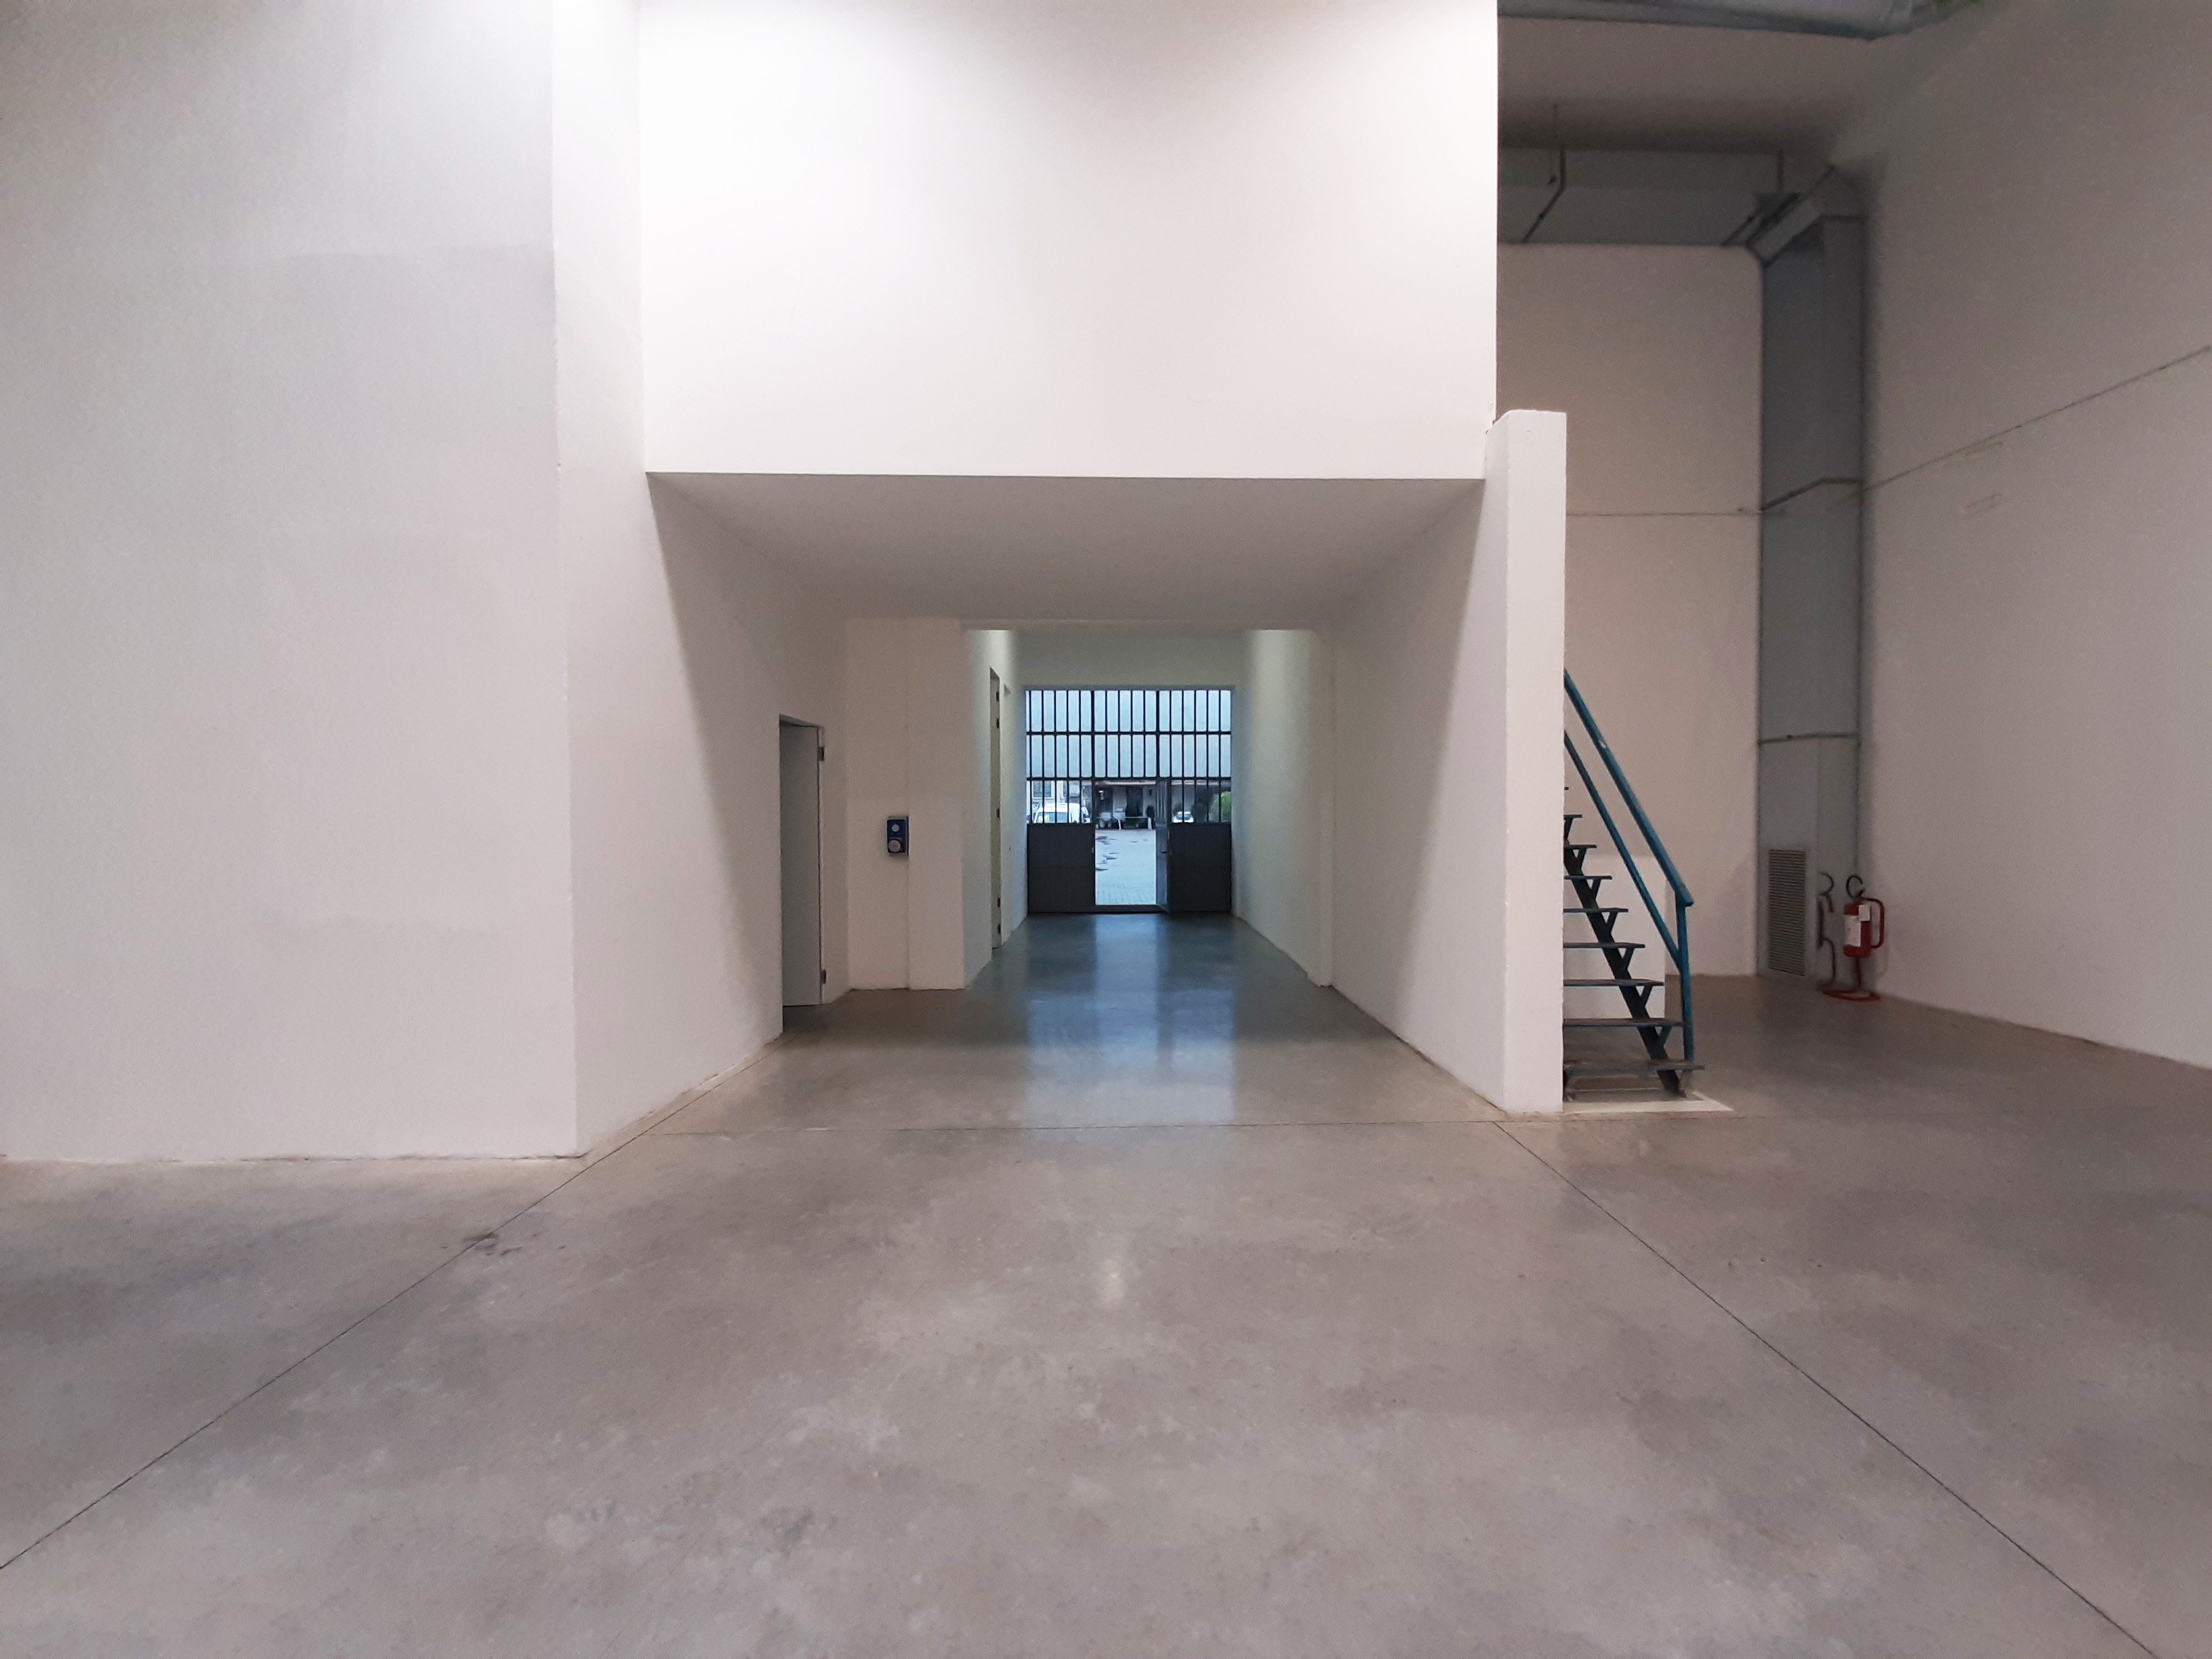 Opificio 31-Officina 31 - Open space, Spazio industriale di 180mq in Via Tortona 31 | location disallestita 6